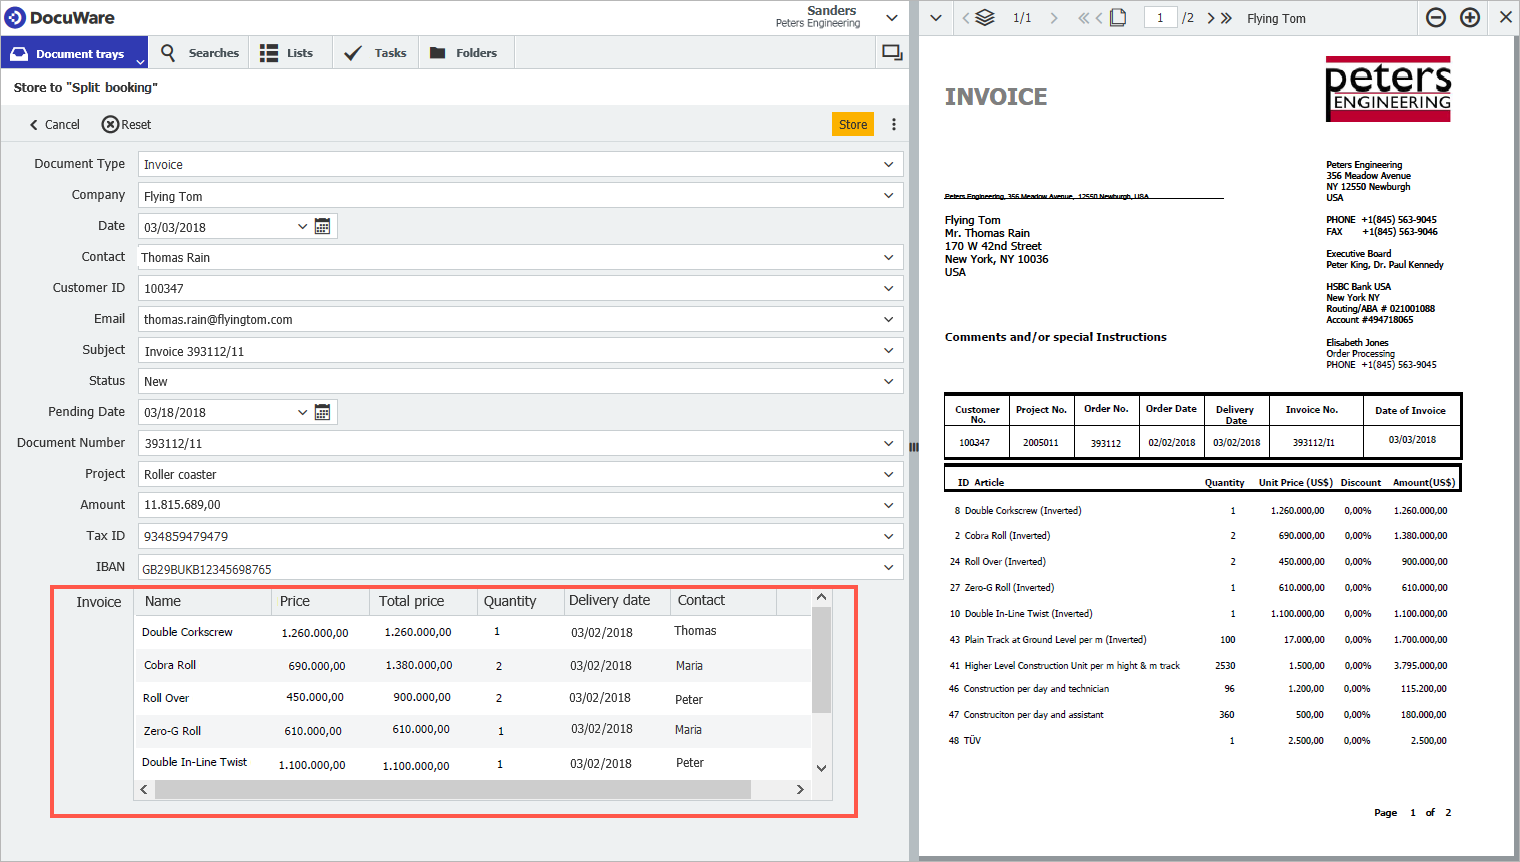 Workflow Manager uses the individual entries within these tables to steer the invoice workflow